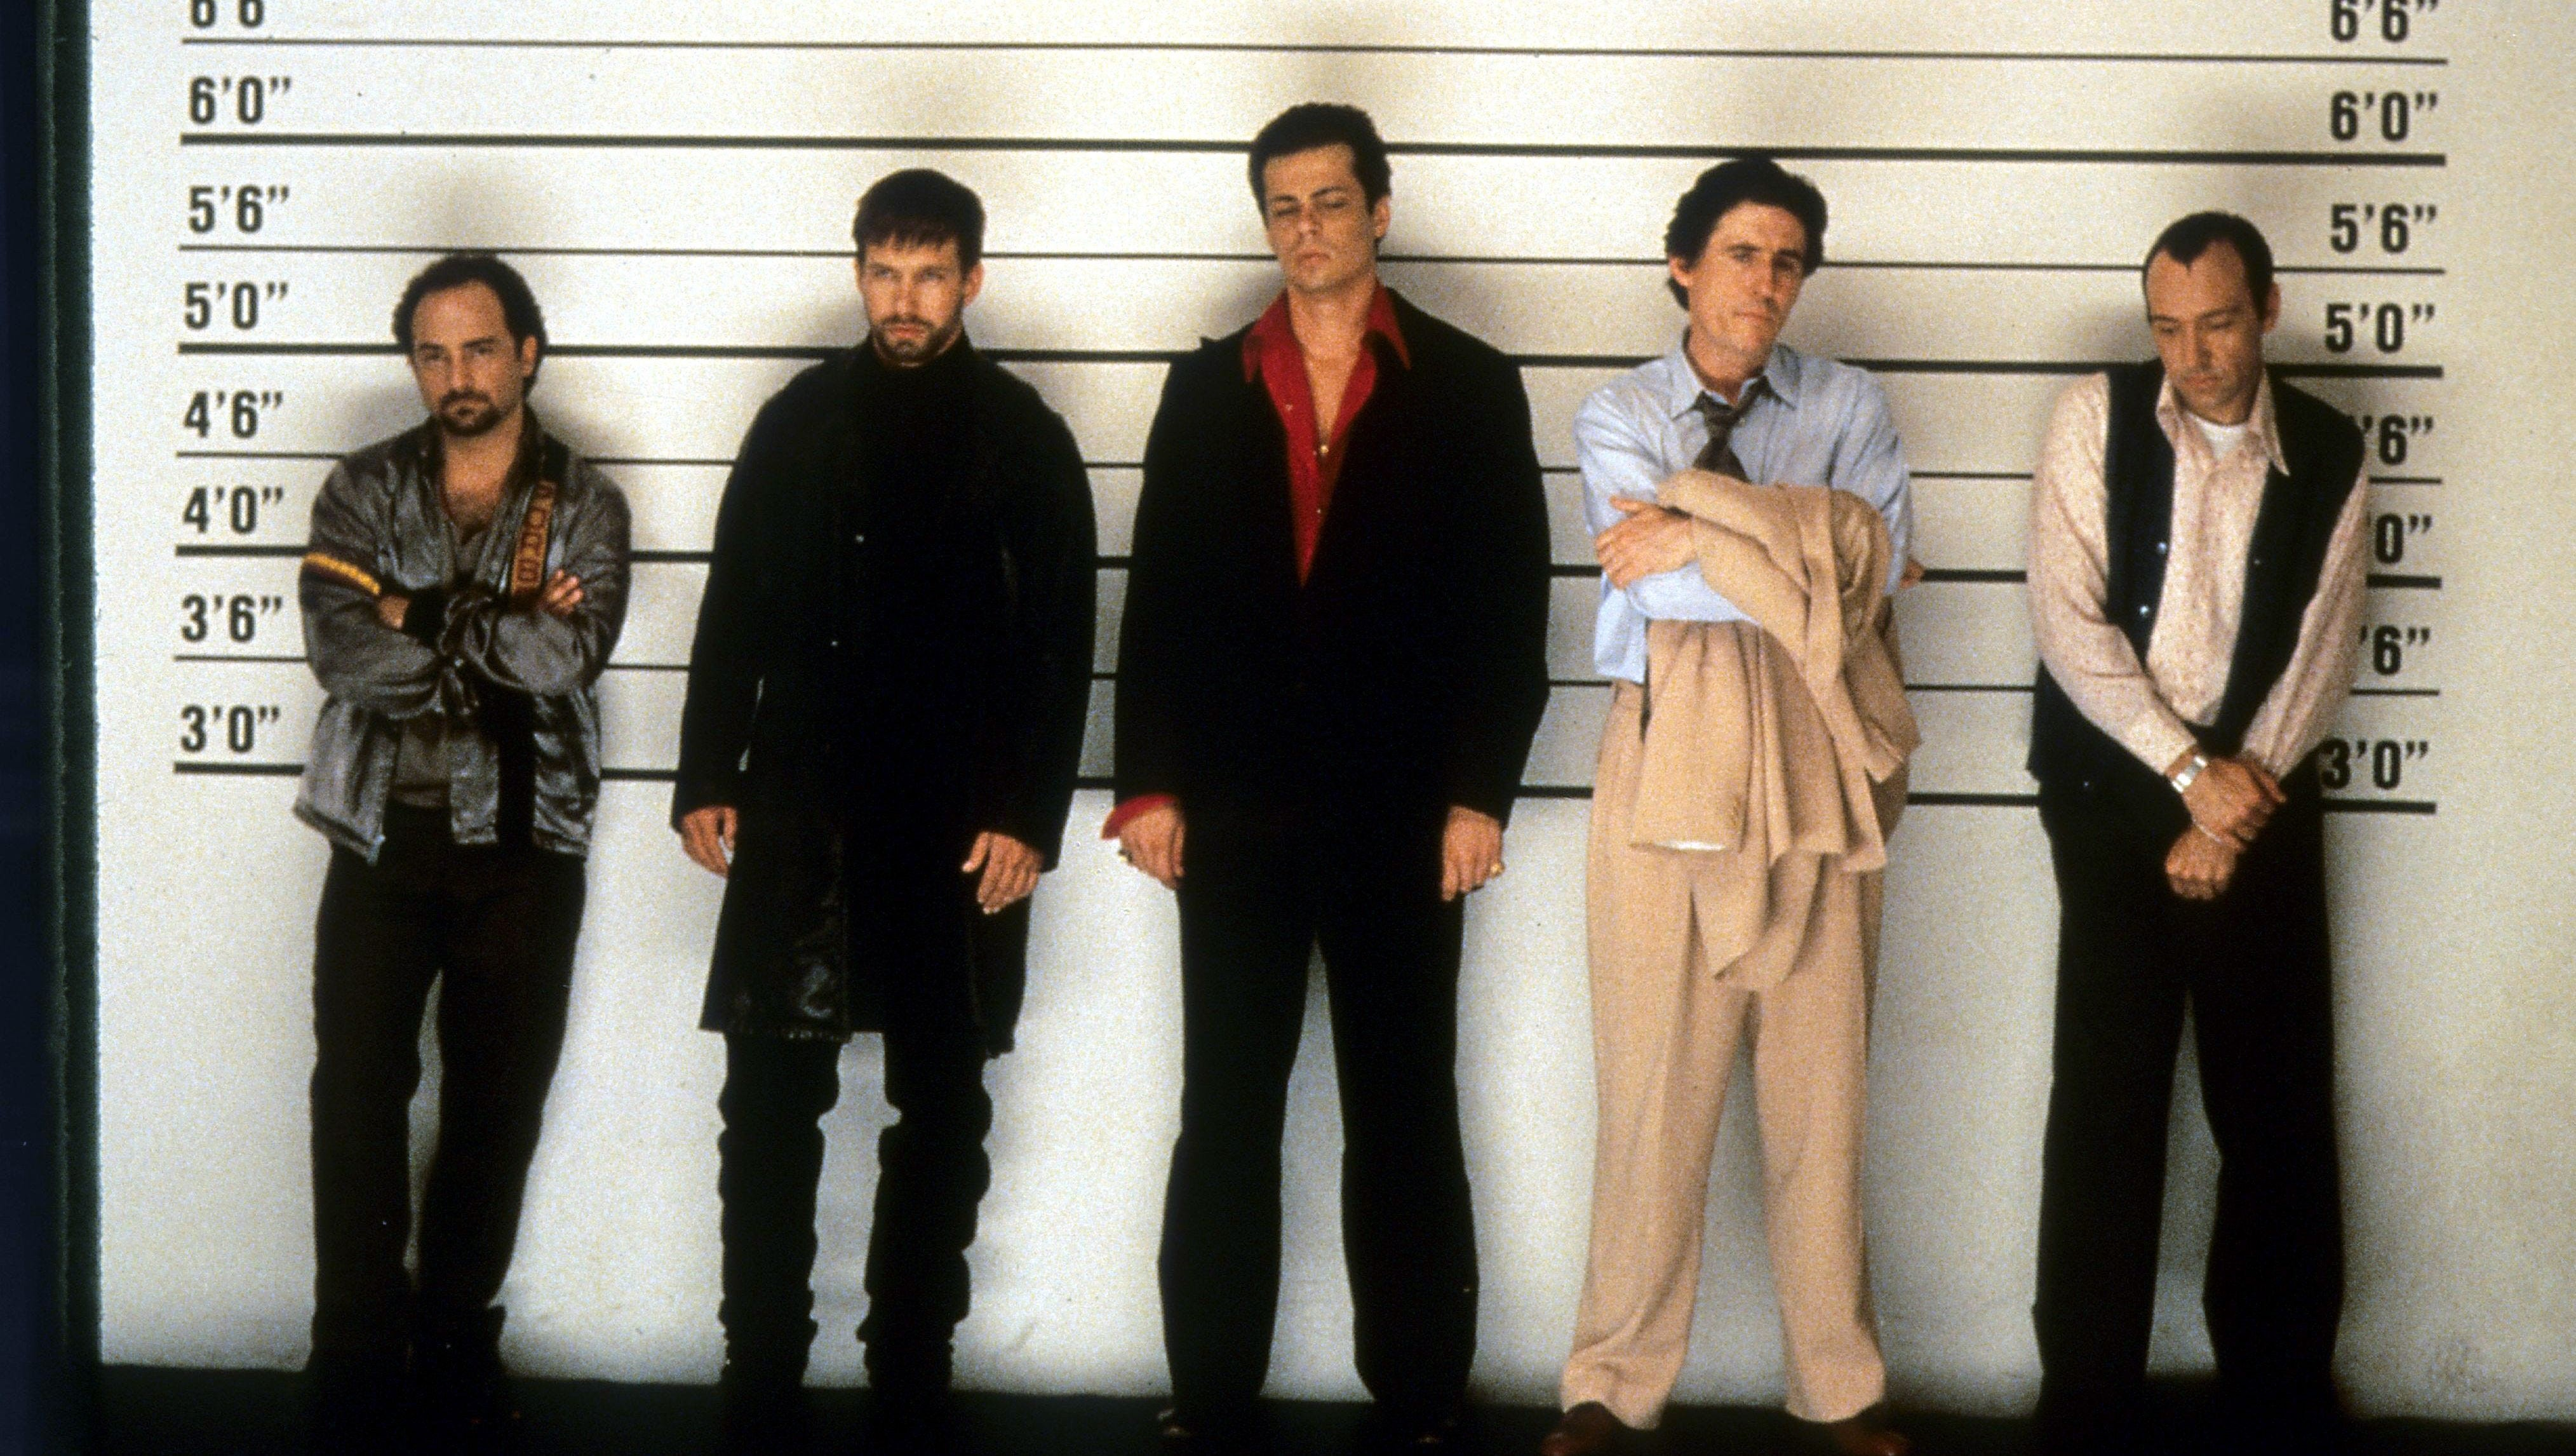 The Usual Suspects movie great films